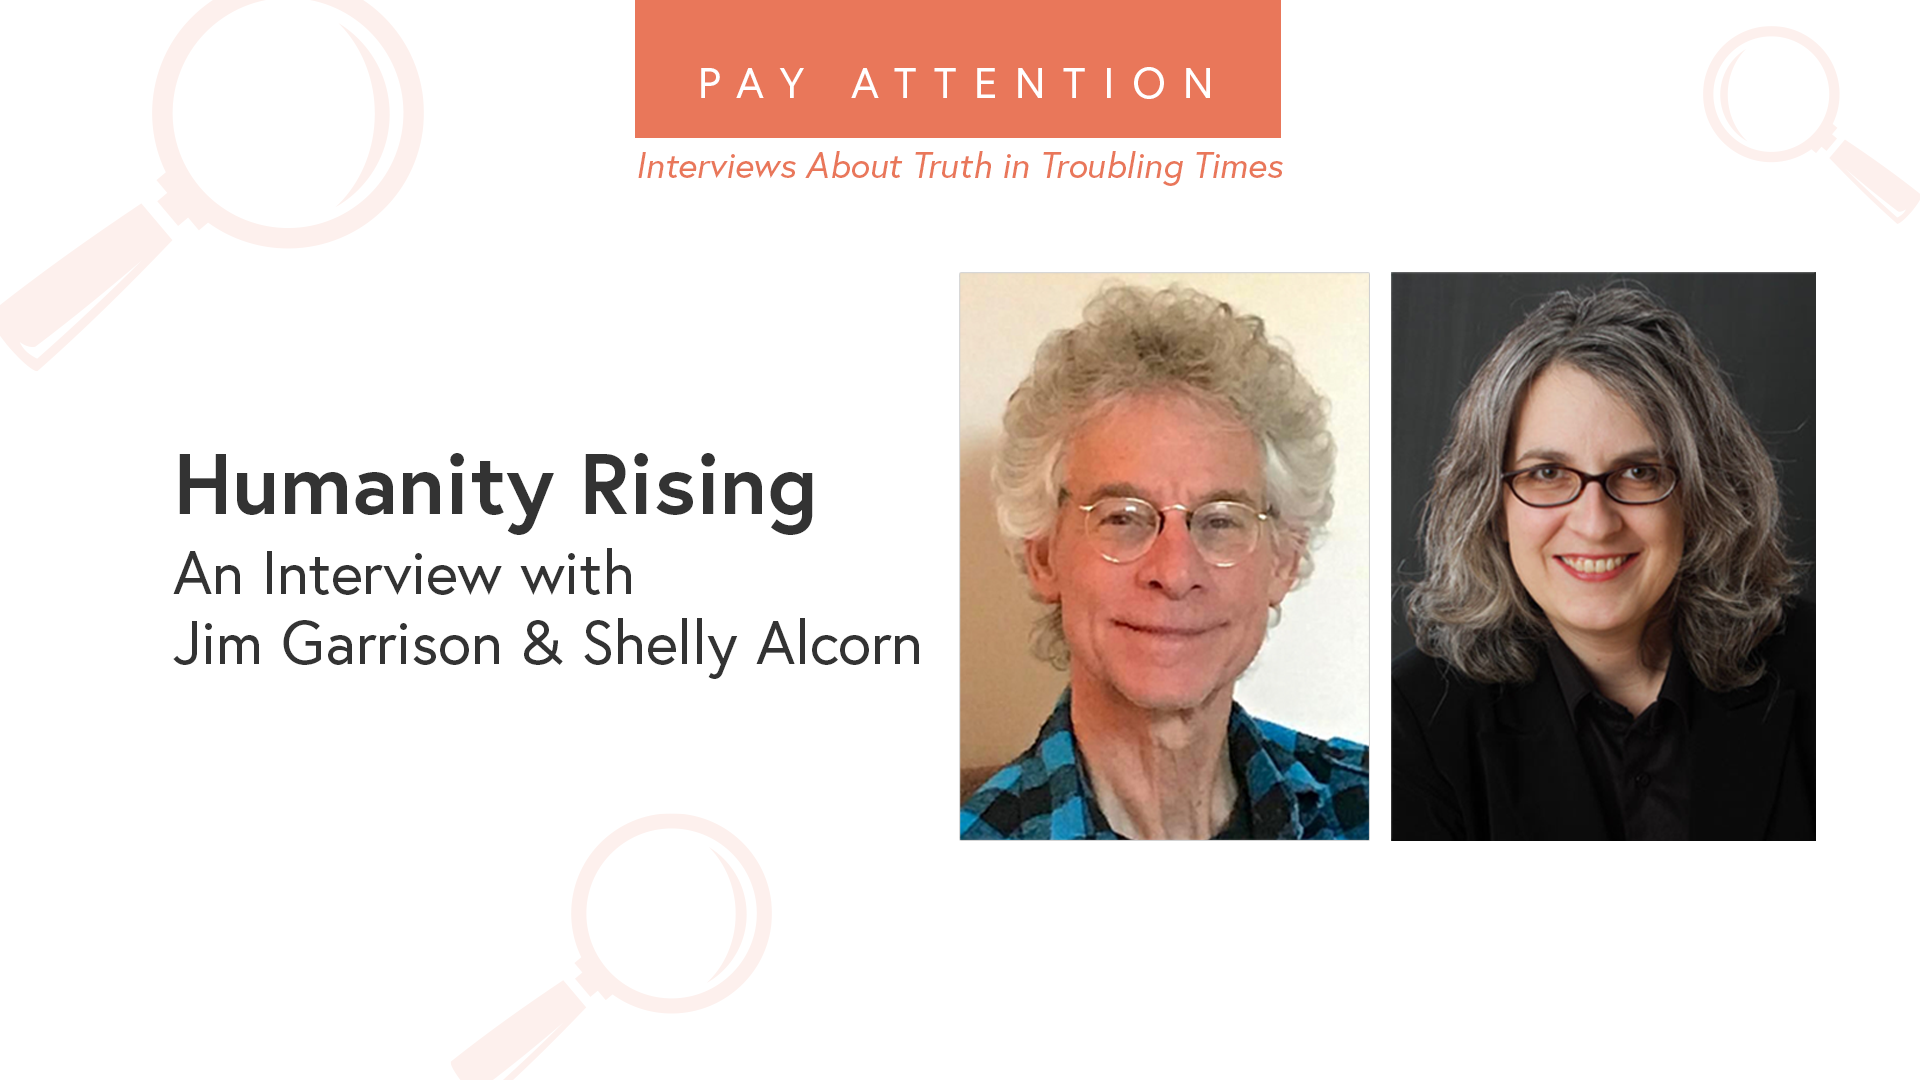 Jim Garrison and Shelly Alcorn Humanity Rising